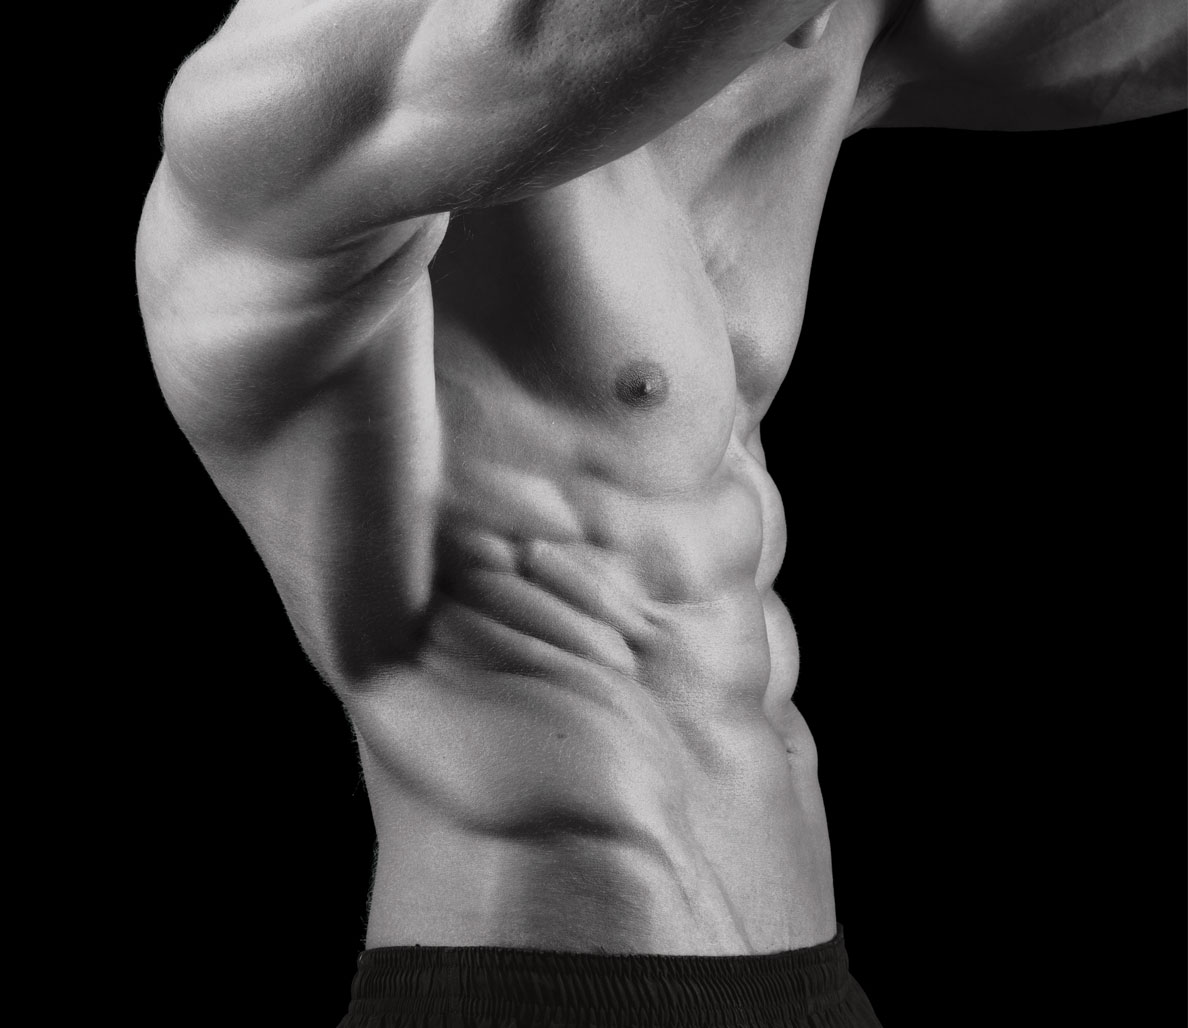 Five Fitness Experts on How to Stay Shredded All Season Long